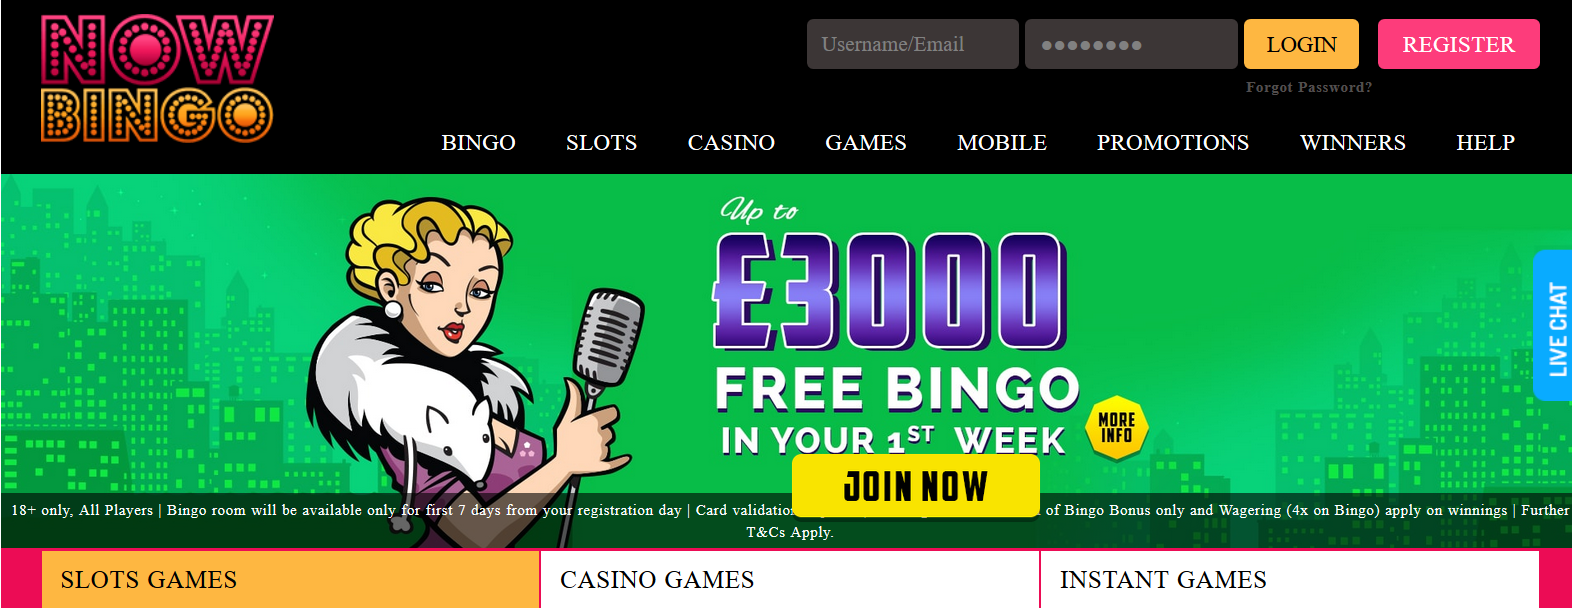 UK Bingo and Casino Games - Now Bingo